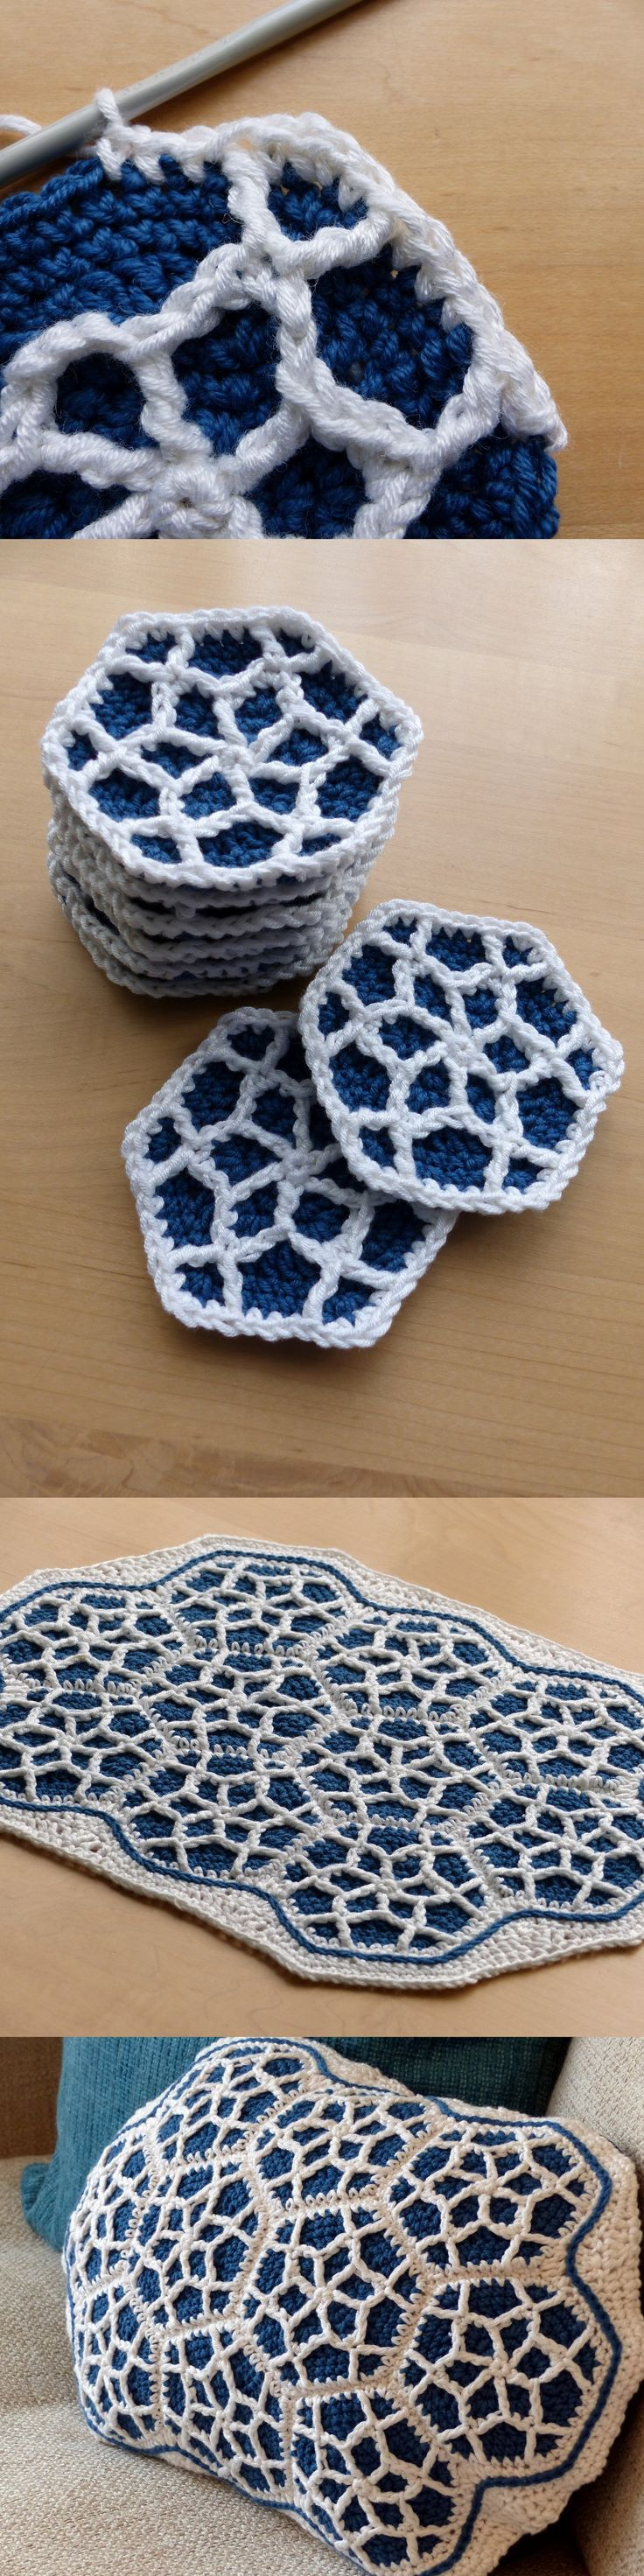 Moroccan Hexagon Motif – Free Crochet Pattern by Make My Day Creative – use this to make a cushion or blanket or scarf༺✿ƬⱤღ https://www.pinterest.com/teretegui/✿༻